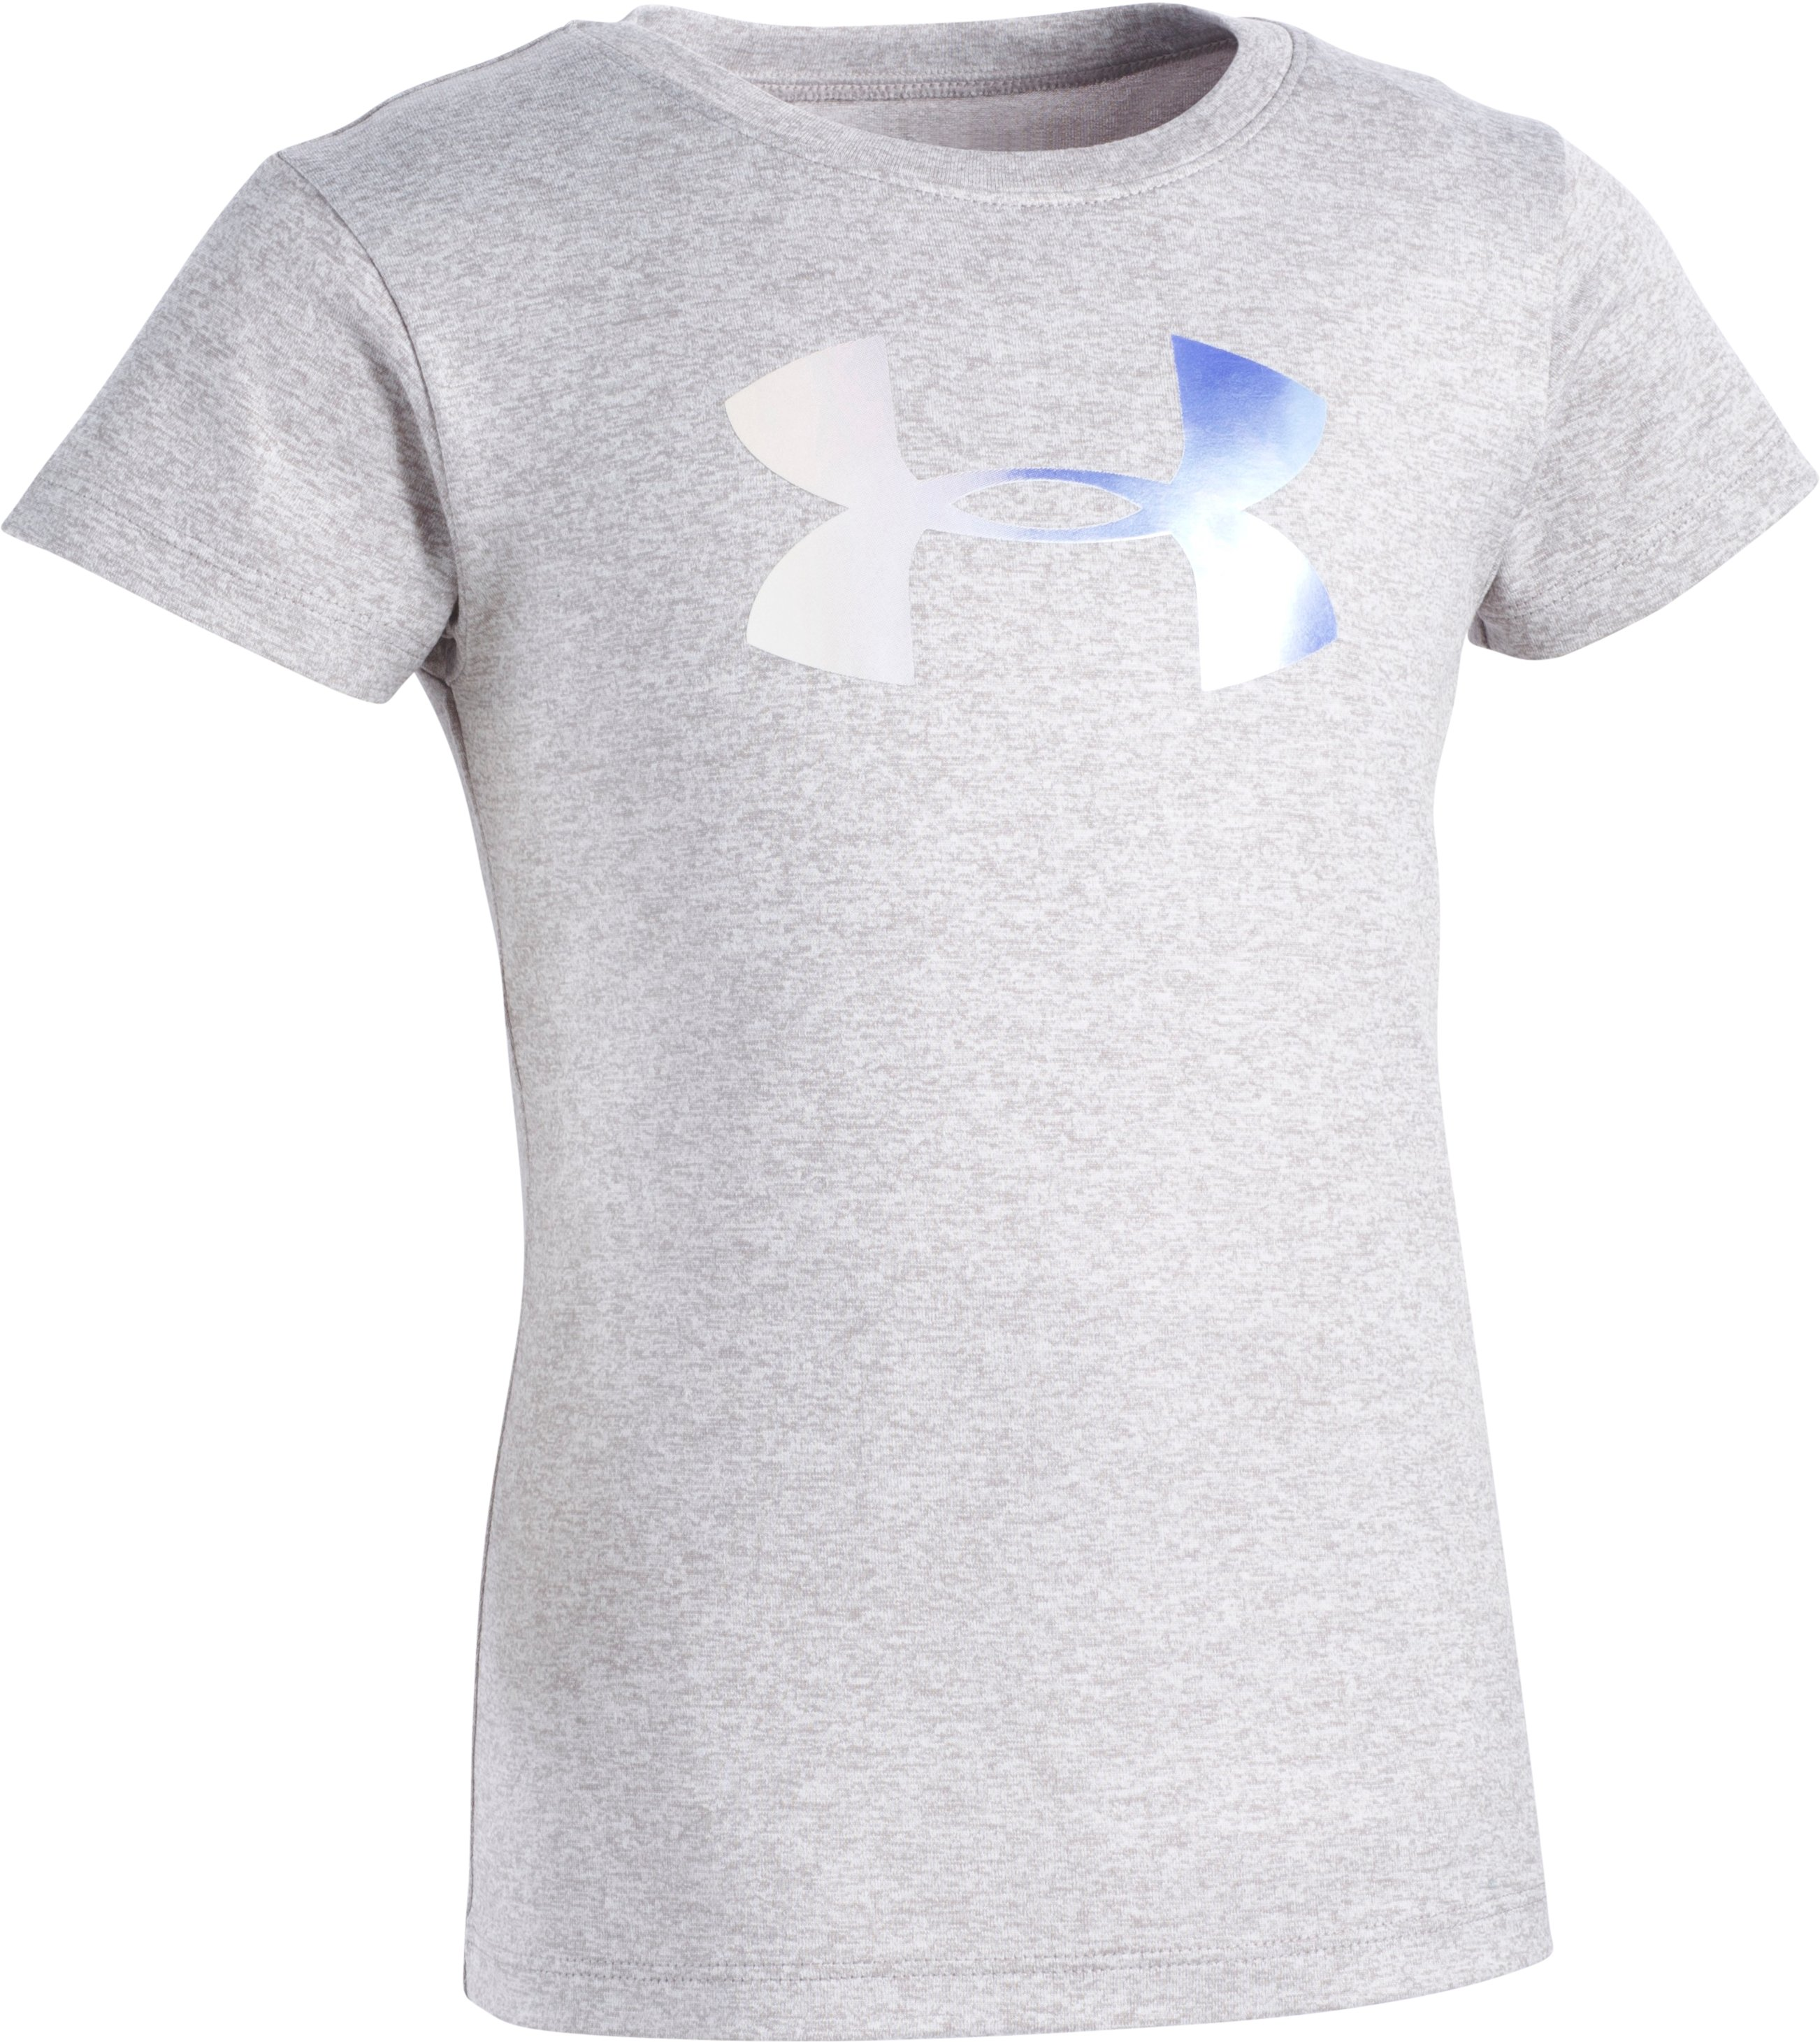 Girls' Pre-School UA Foil Big Logo Short Sleeve T-Shirt 2 Colors $17.99